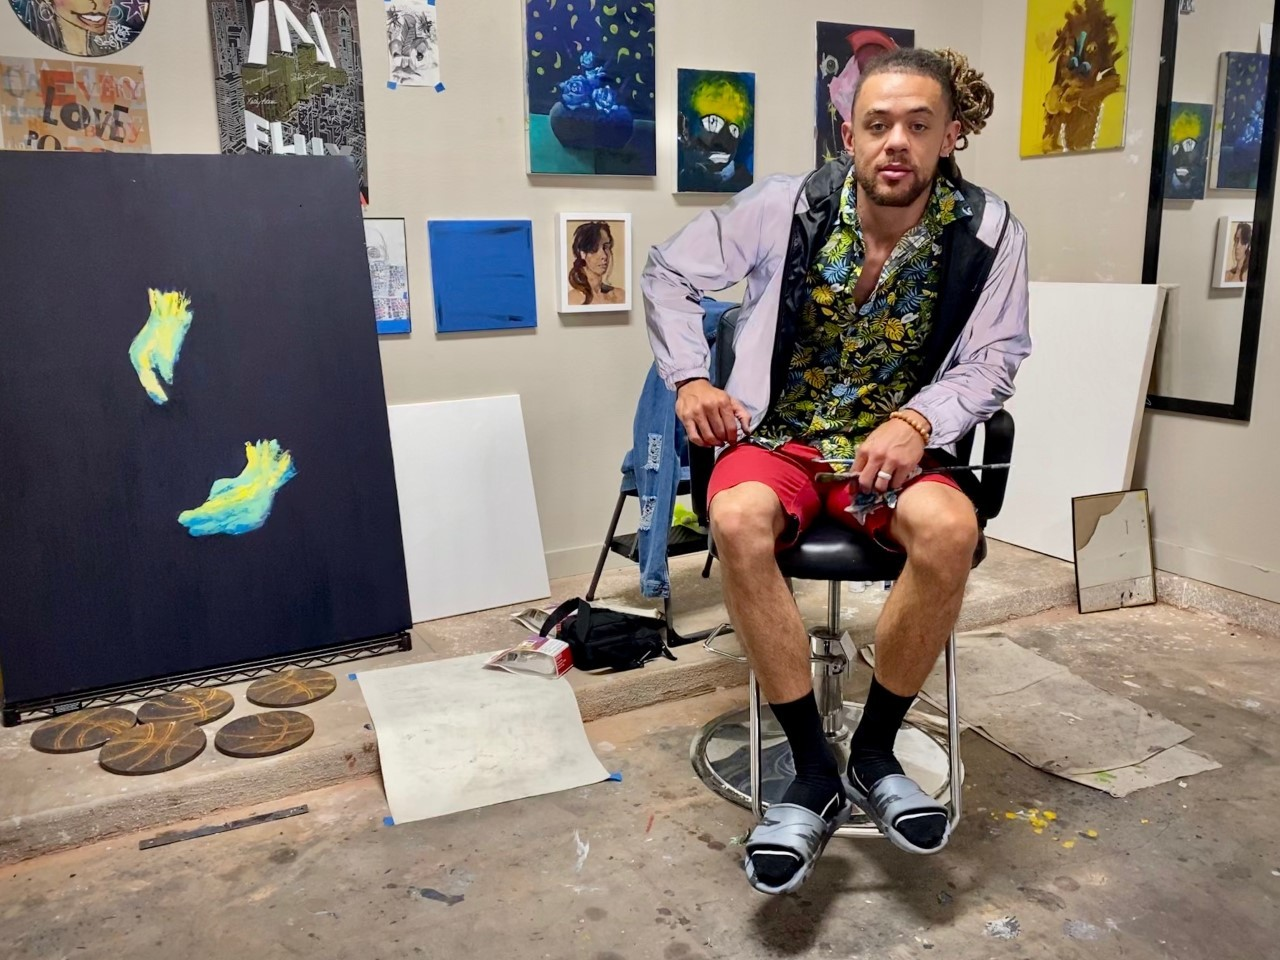 A man sits in a chair in a studio, surrounded by artworks on the walls